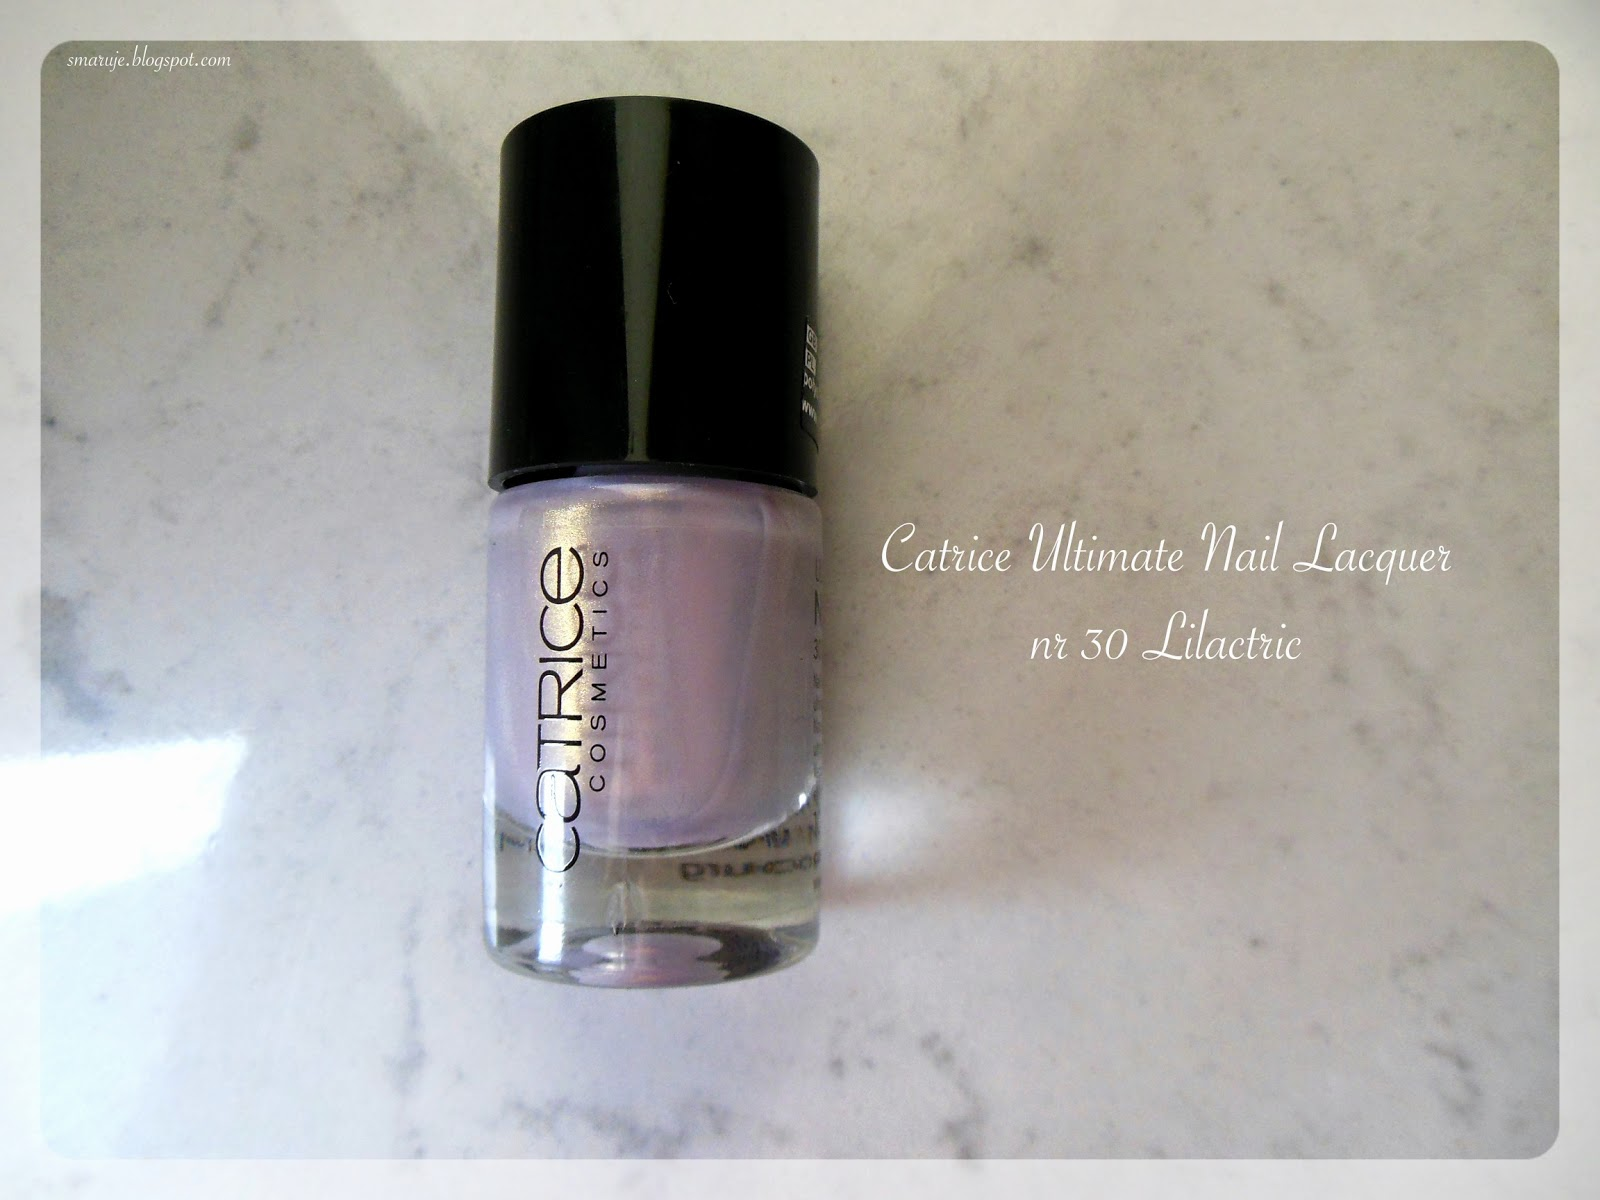 Elektryzujący lilak: Catrice – Ultimate Nail Lacquer nr 30 Lilactric